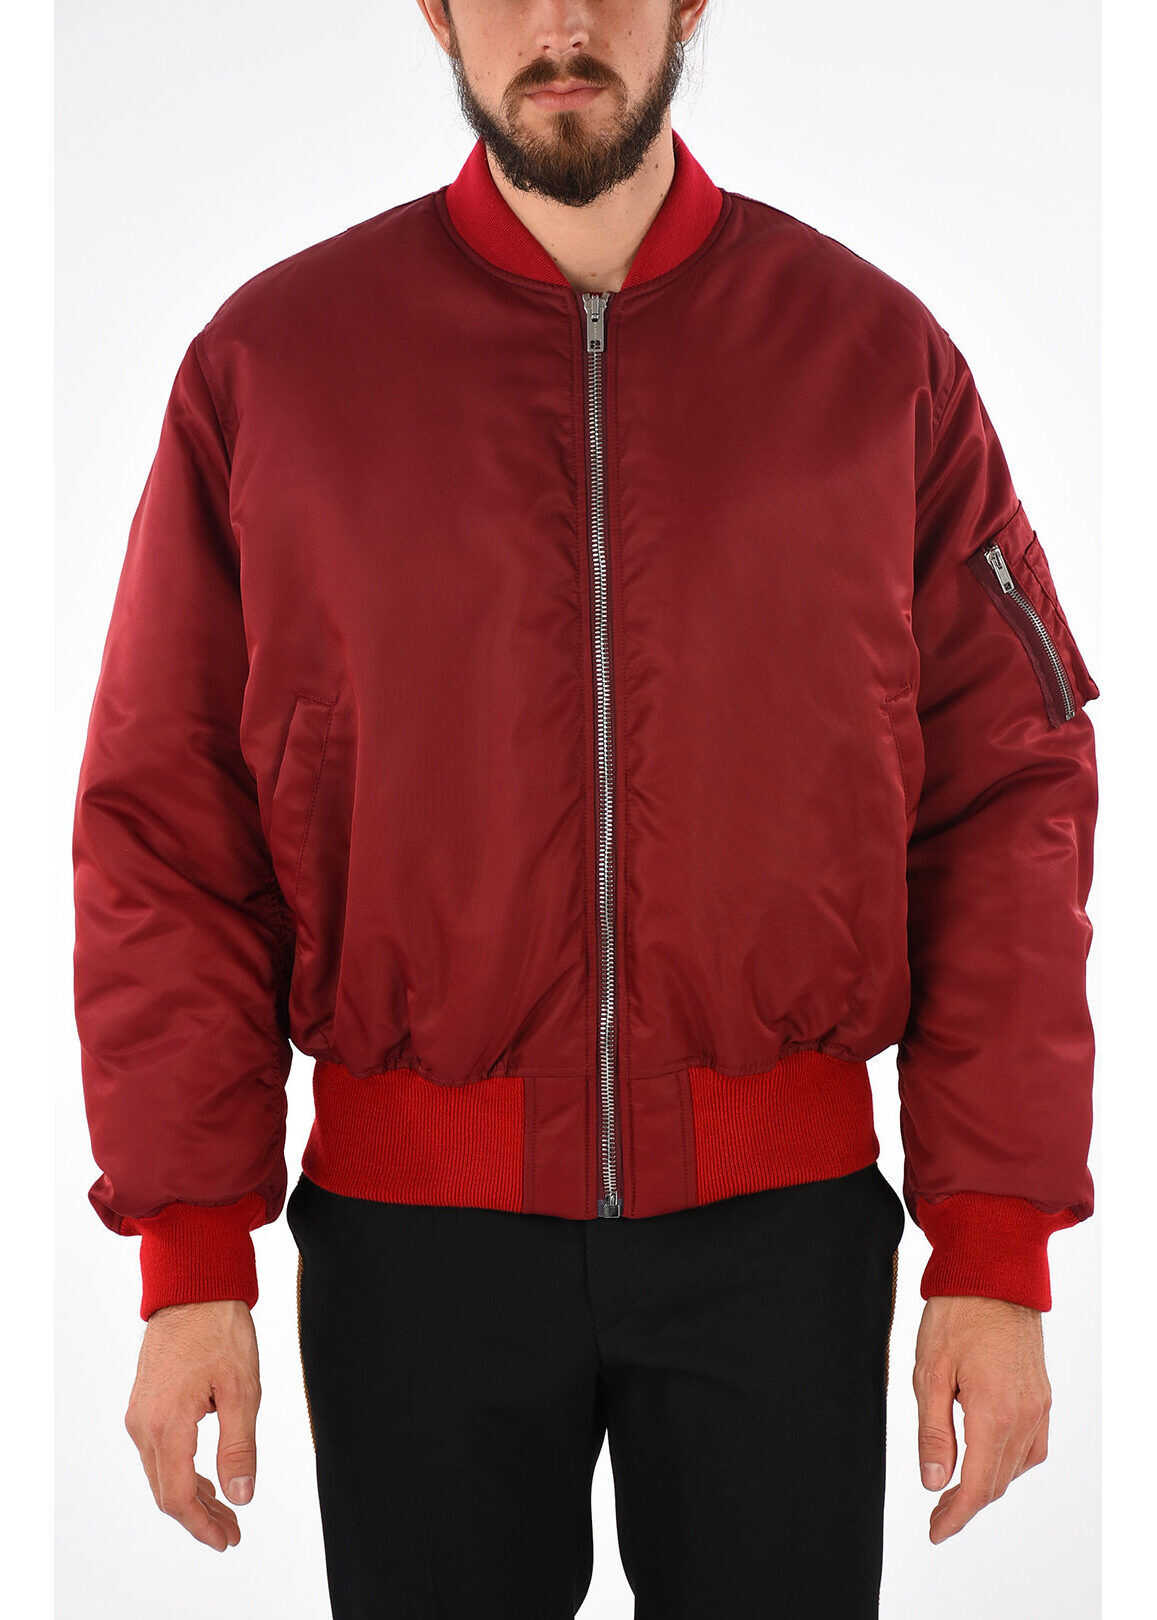 Calvin Klein 205W39NYC Embroidered Bomber RED